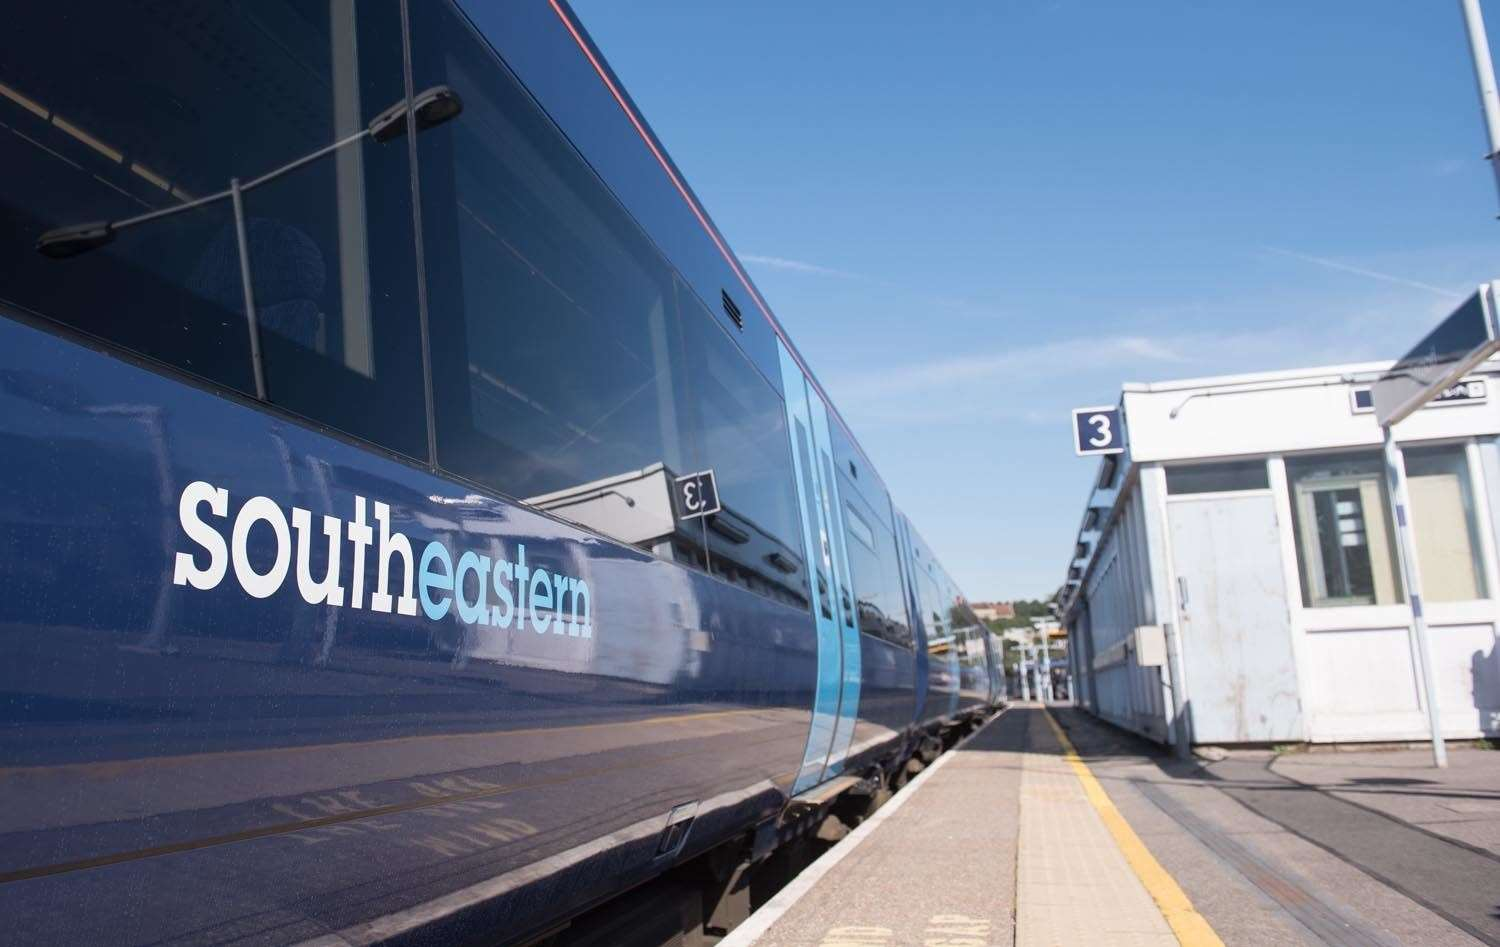 A Southeastern train. Stock picture (8601639)